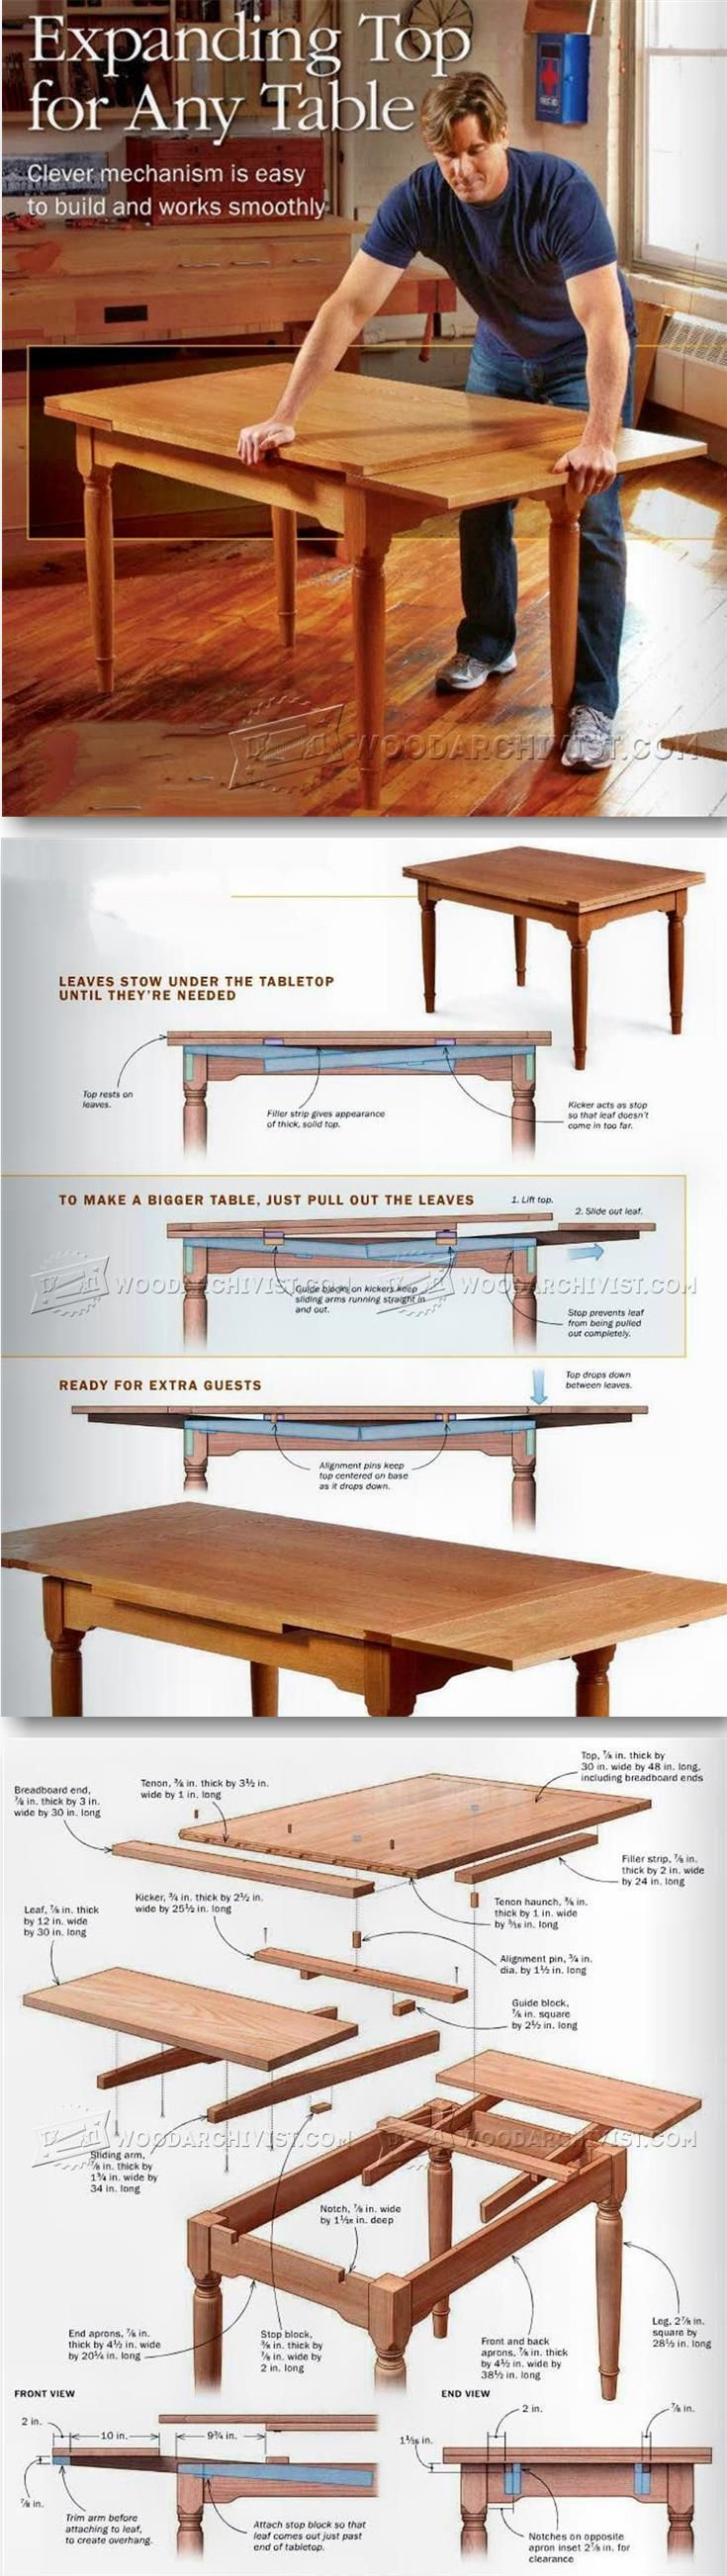 Expanding Table Plans Furniture Plans and